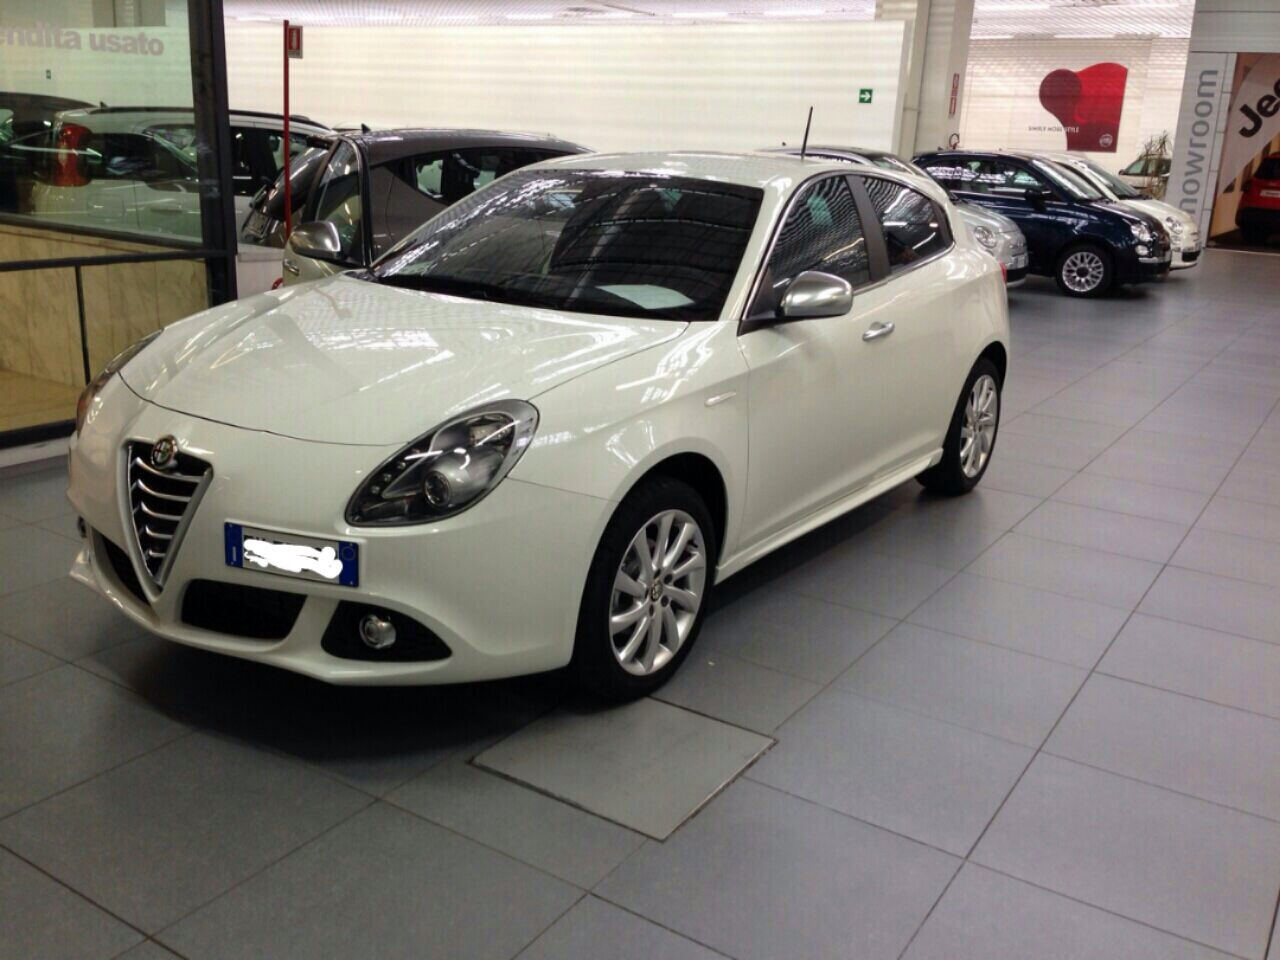 alfa romeo giulietta 1 4 tb 120cv distinctive bianco ghiaccio 2014 rm club alfa. Black Bedroom Furniture Sets. Home Design Ideas